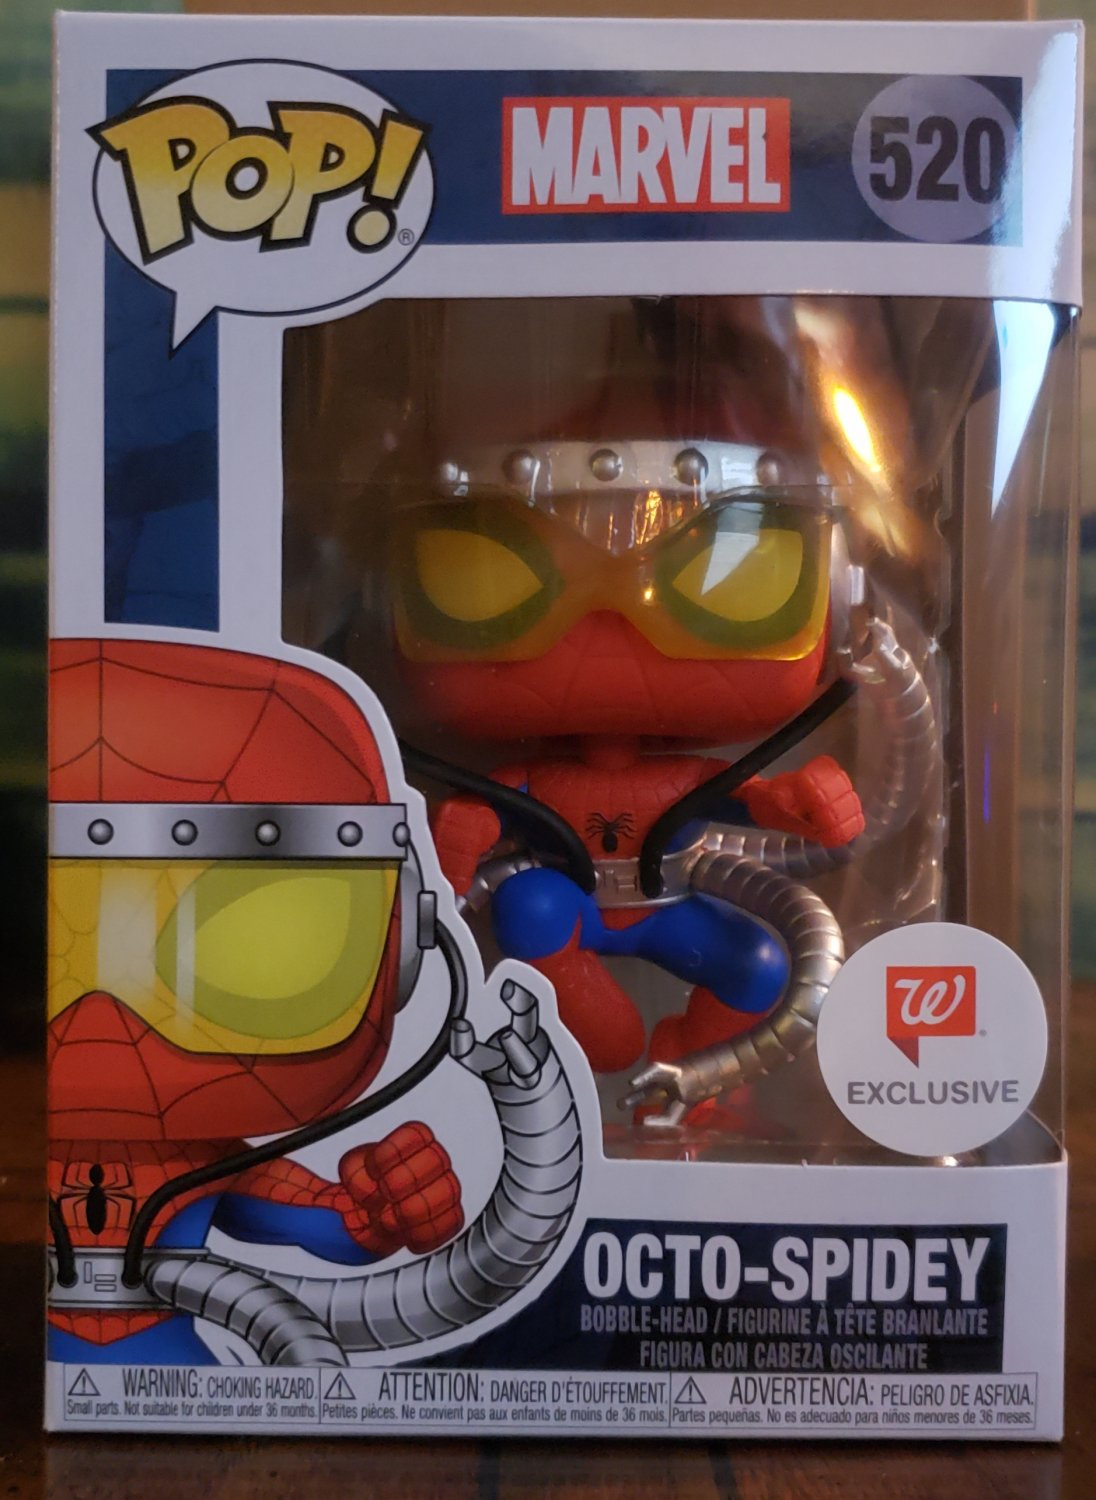 FUNKO POP - MARVEL - OCTO-SPIDEY #520 (80Years) NEW with POP POTECTOR